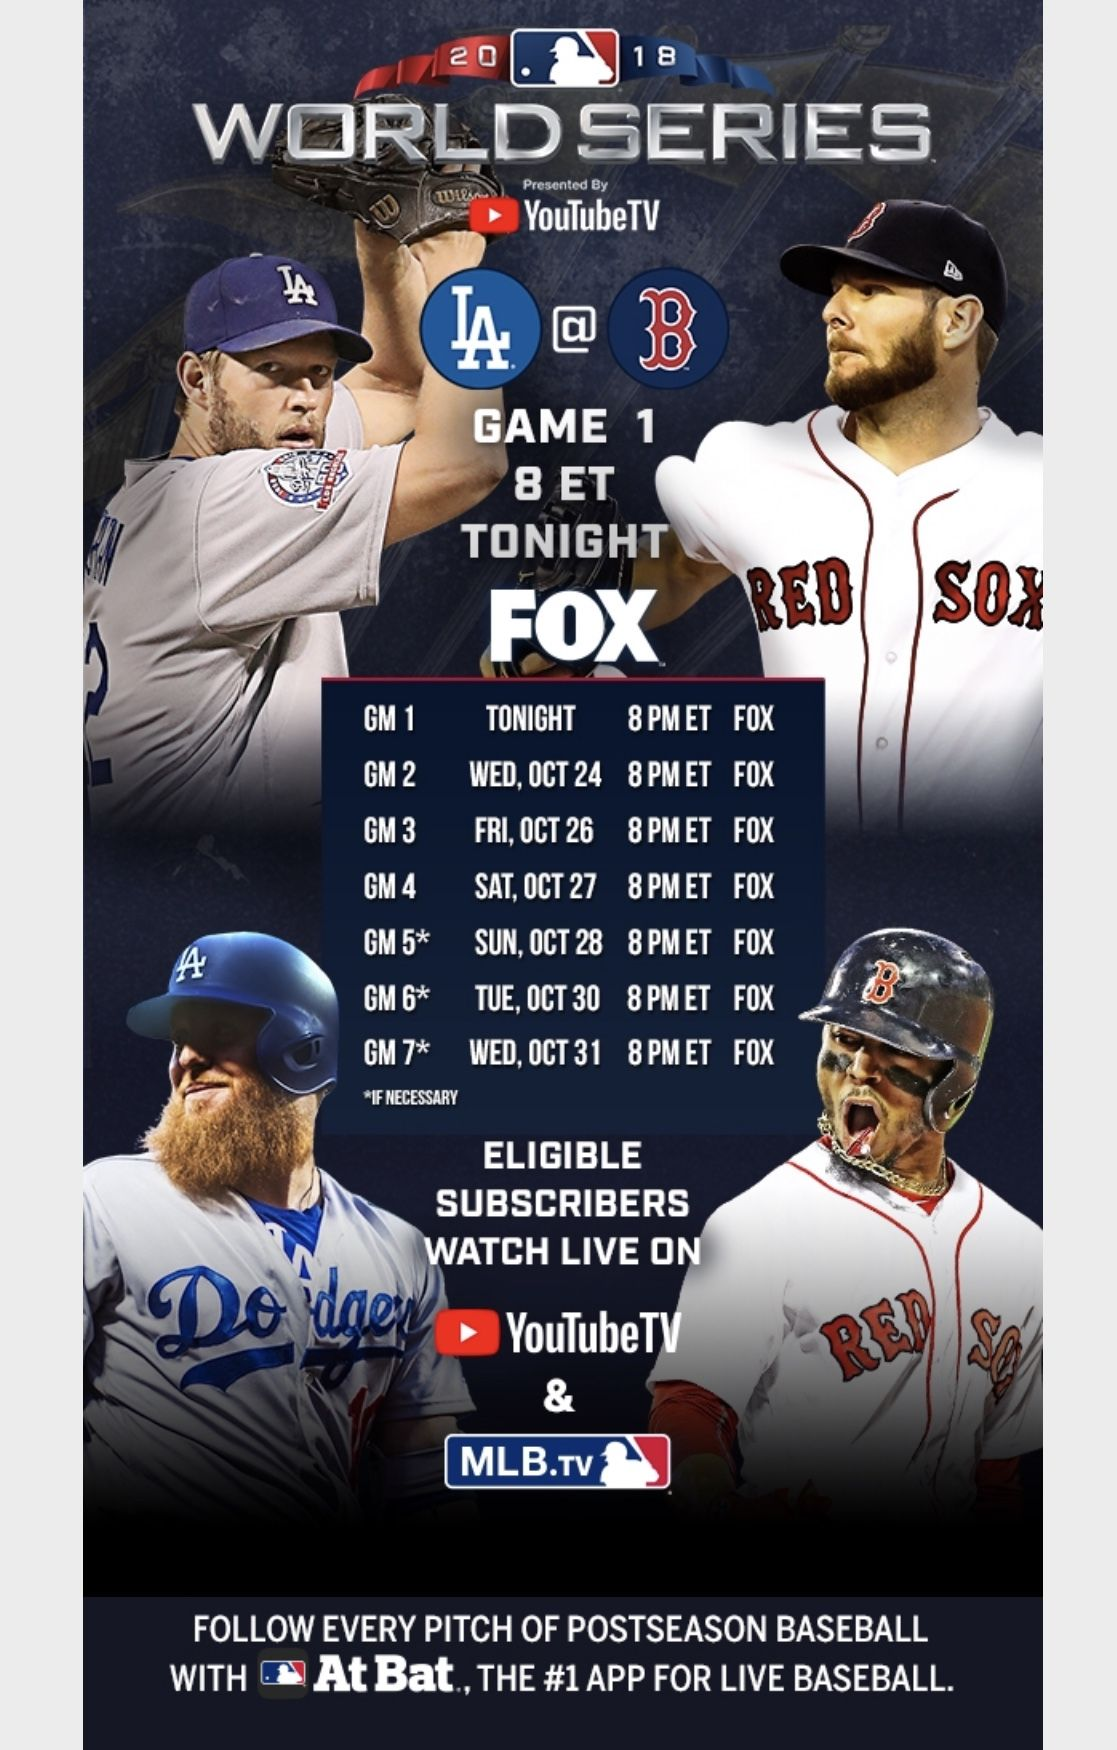 2018 World Series Schedule Red sox, World series, Game 1